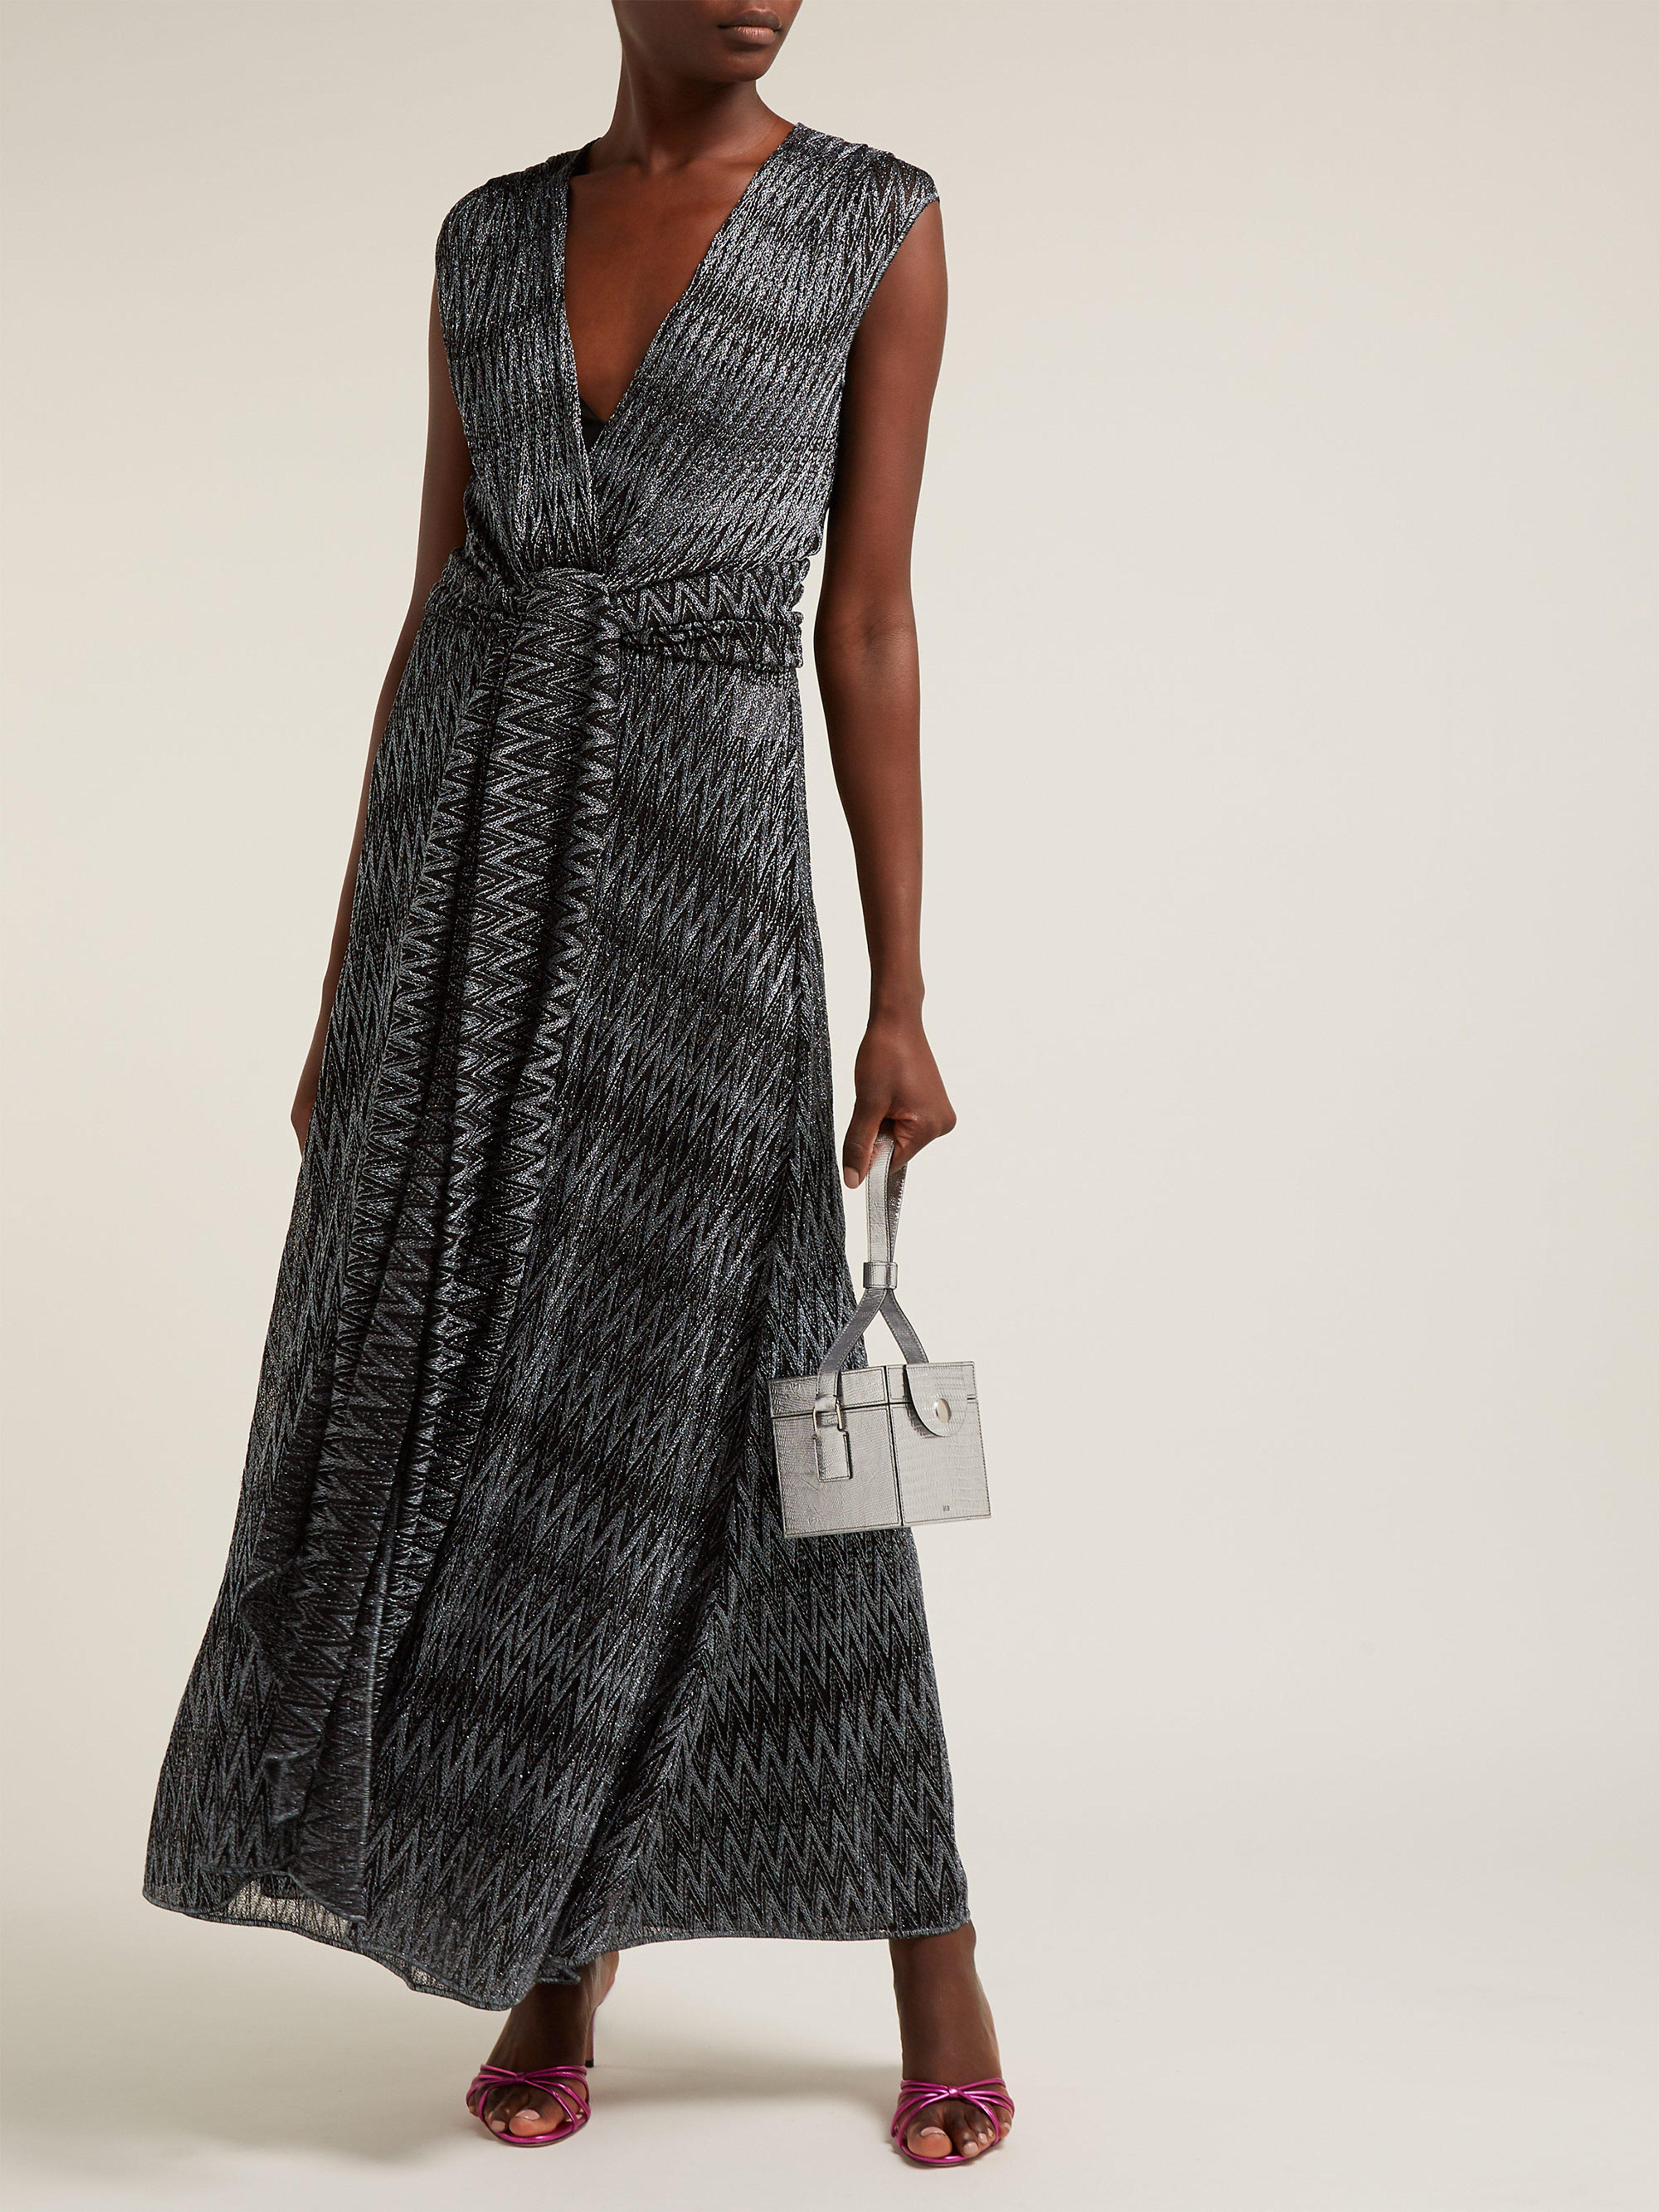 59f0280a57 Missoni Zigzag Knitted Wrap Front Dress in Black - Lyst